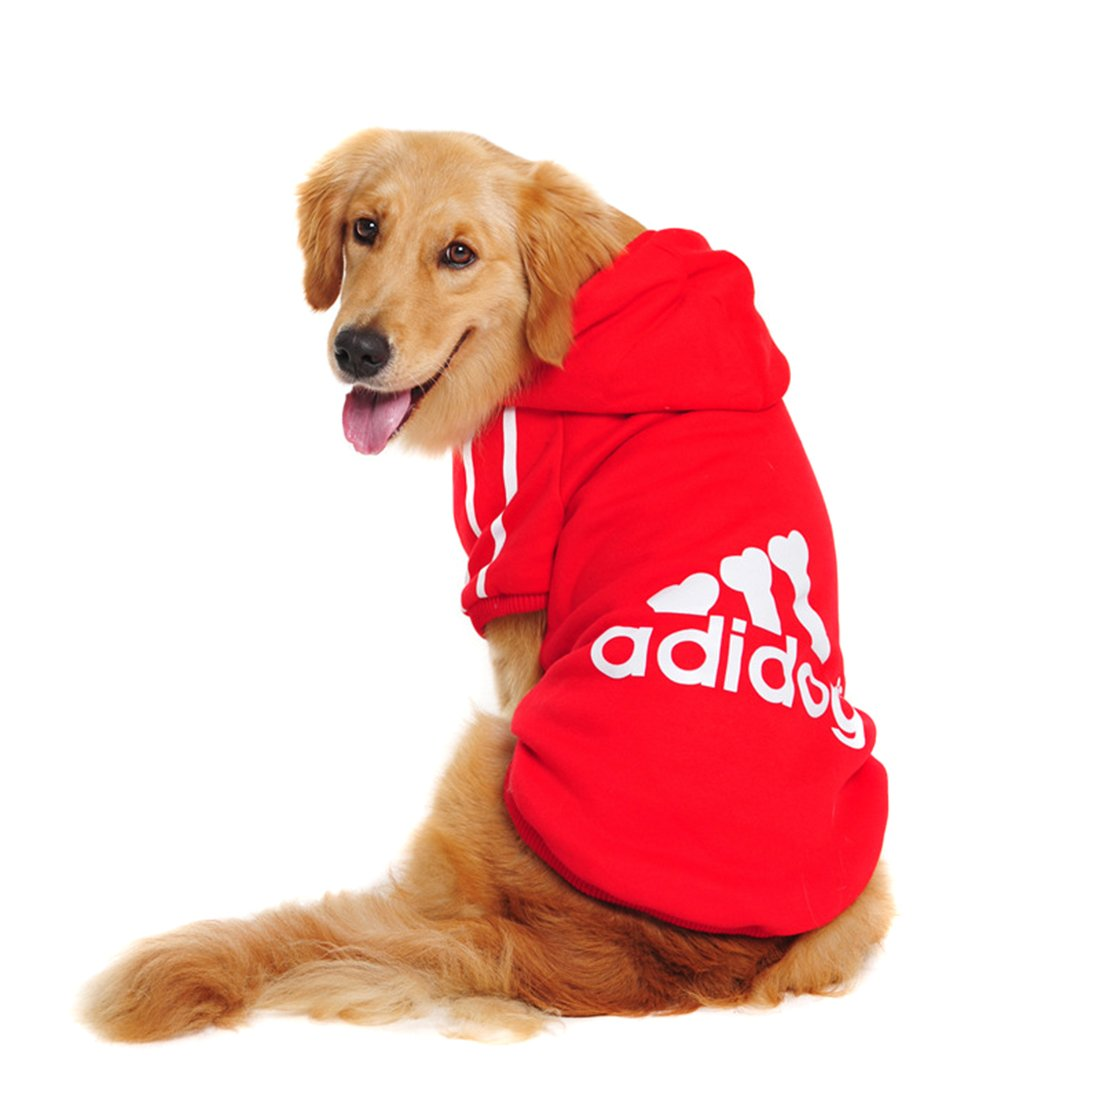 Spring Autumn Big Dog Clothes Coat Jacket Clothing for Dogs Large Size Golden Retriever Labrador 3XL-9XL Adidog Hoodie (Red, 8XL)